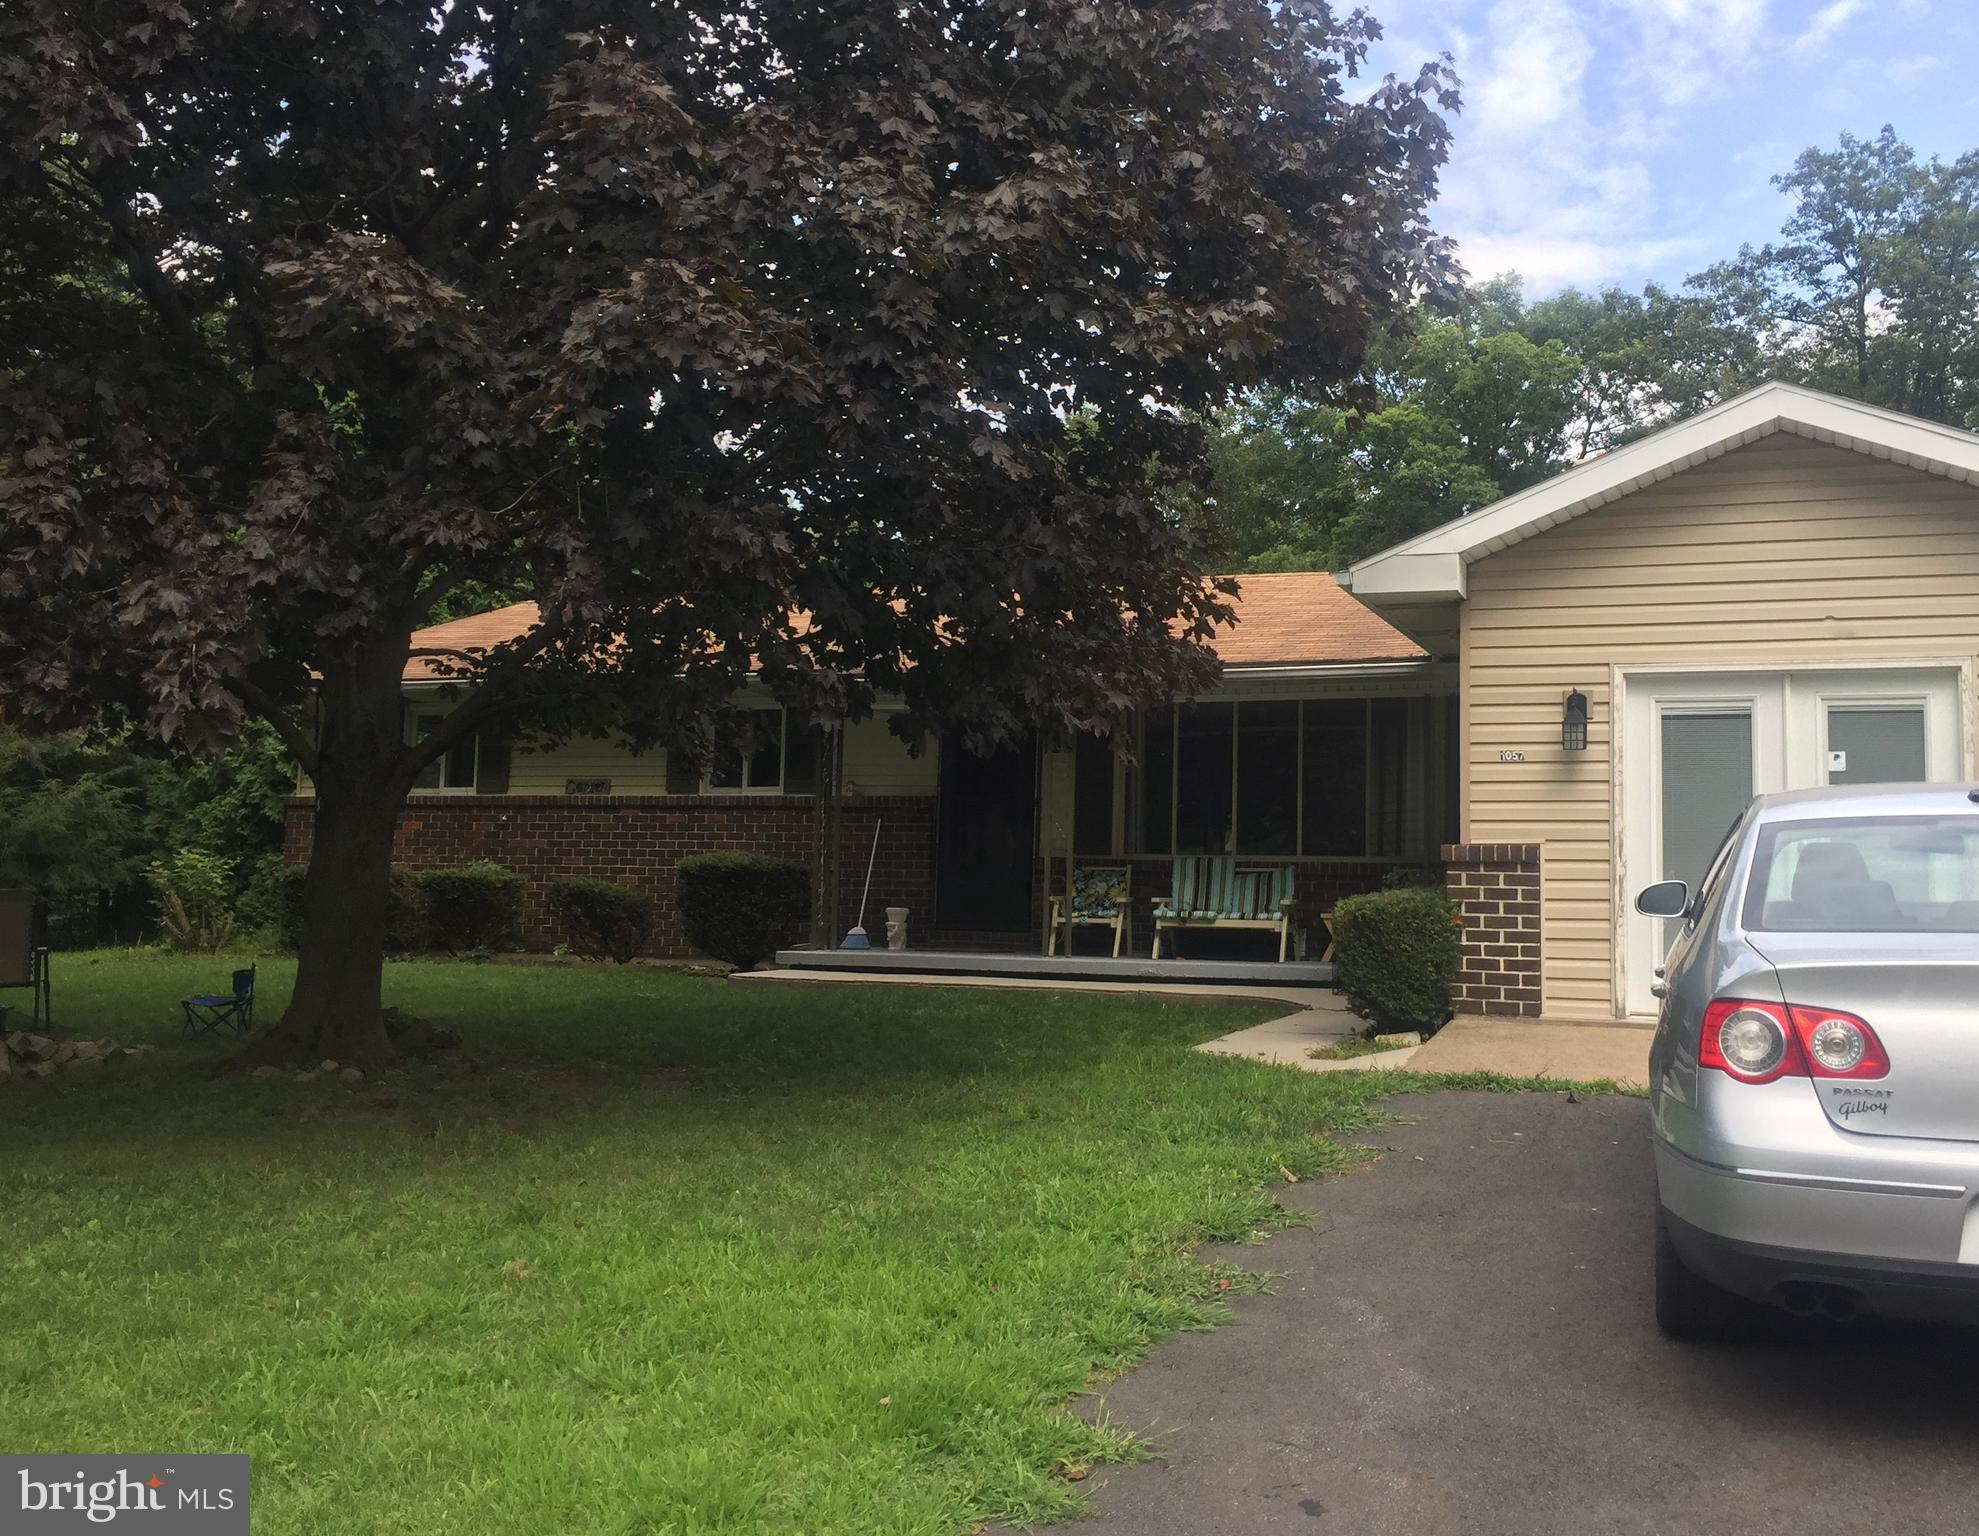 1057 SUMMIT HILL RD, ARISTES, PA 17920